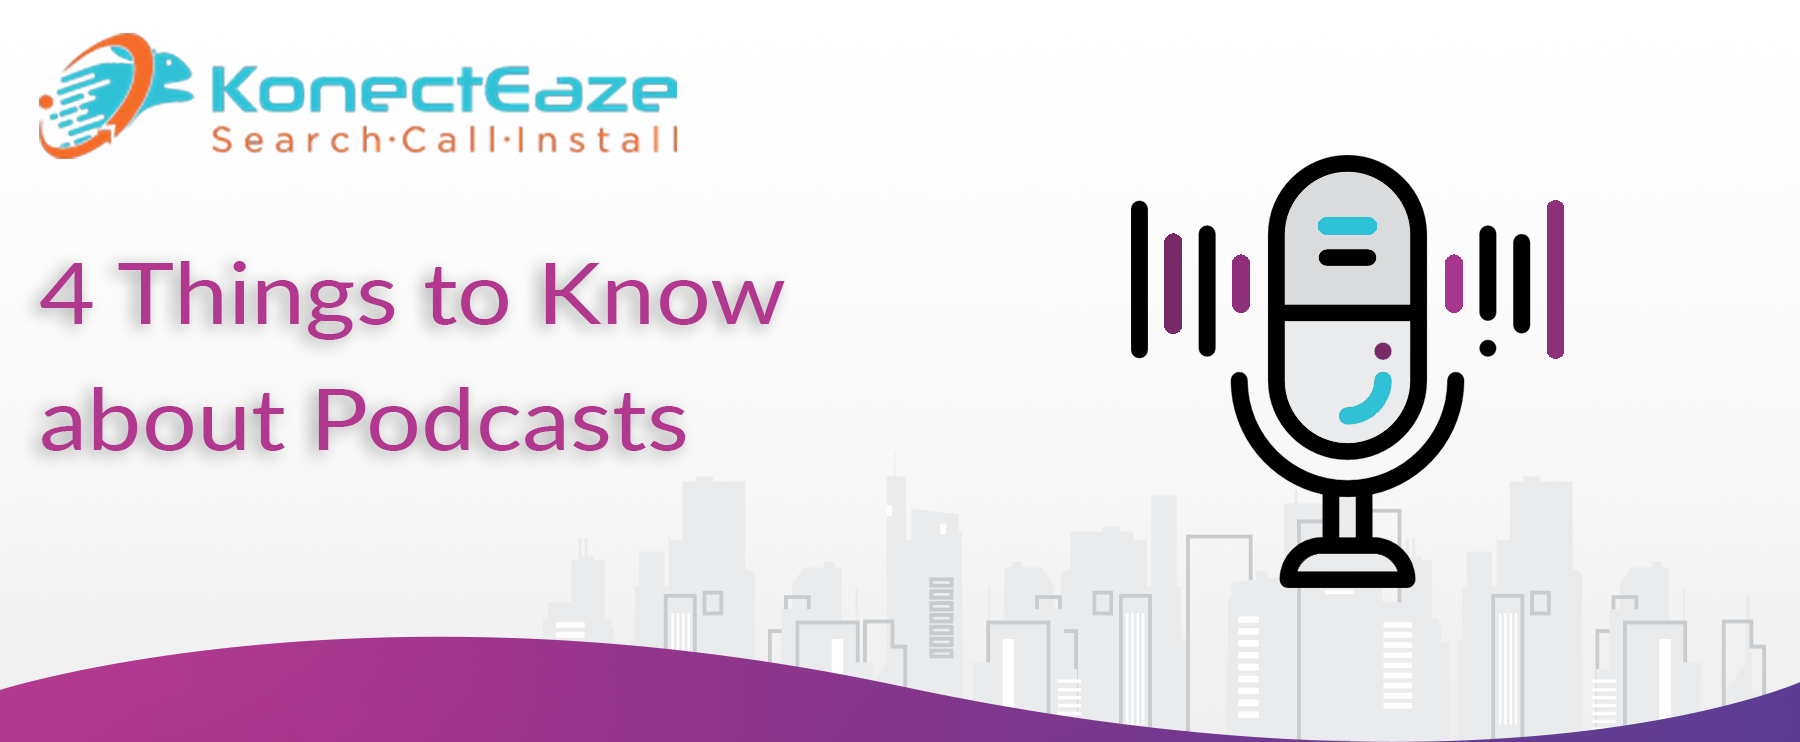 4 Things to Know about Podcasts